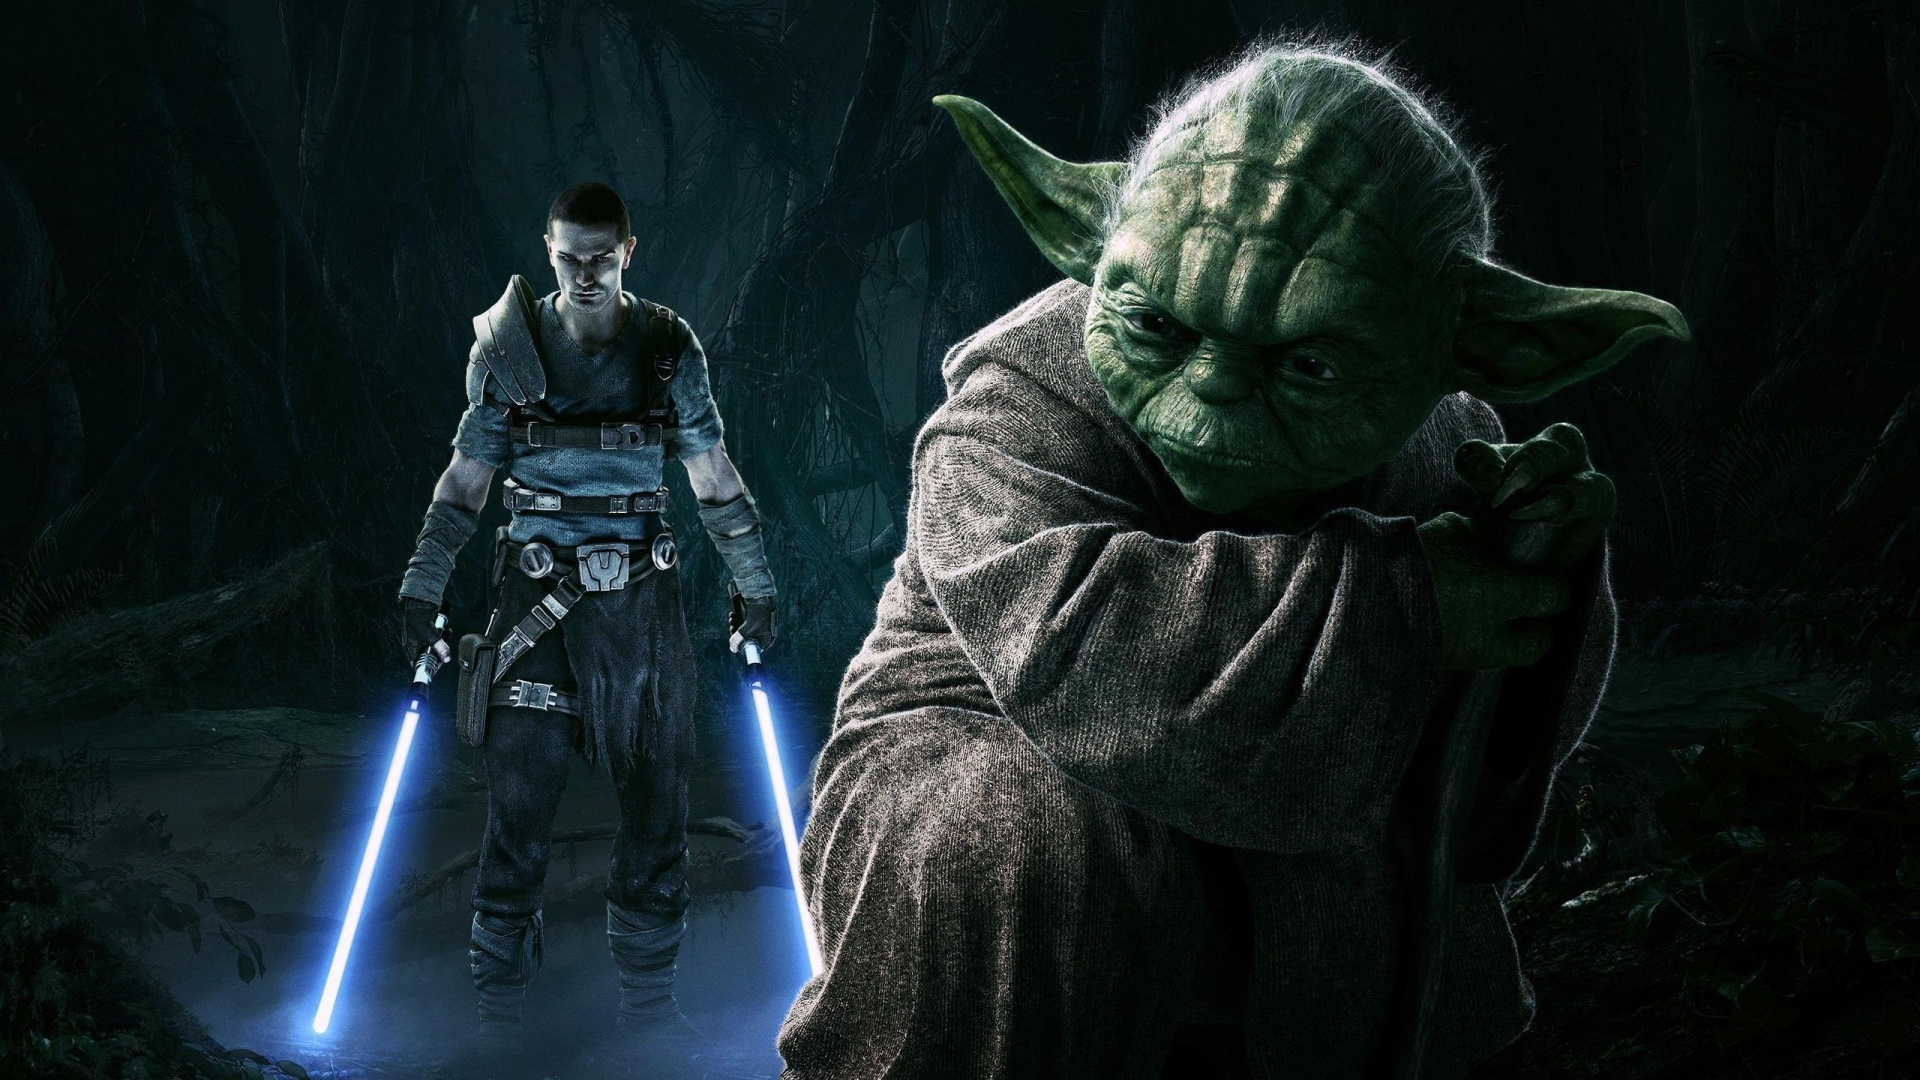 Yoda Star Wars - High Definition Wallpapers - HD wallpapers